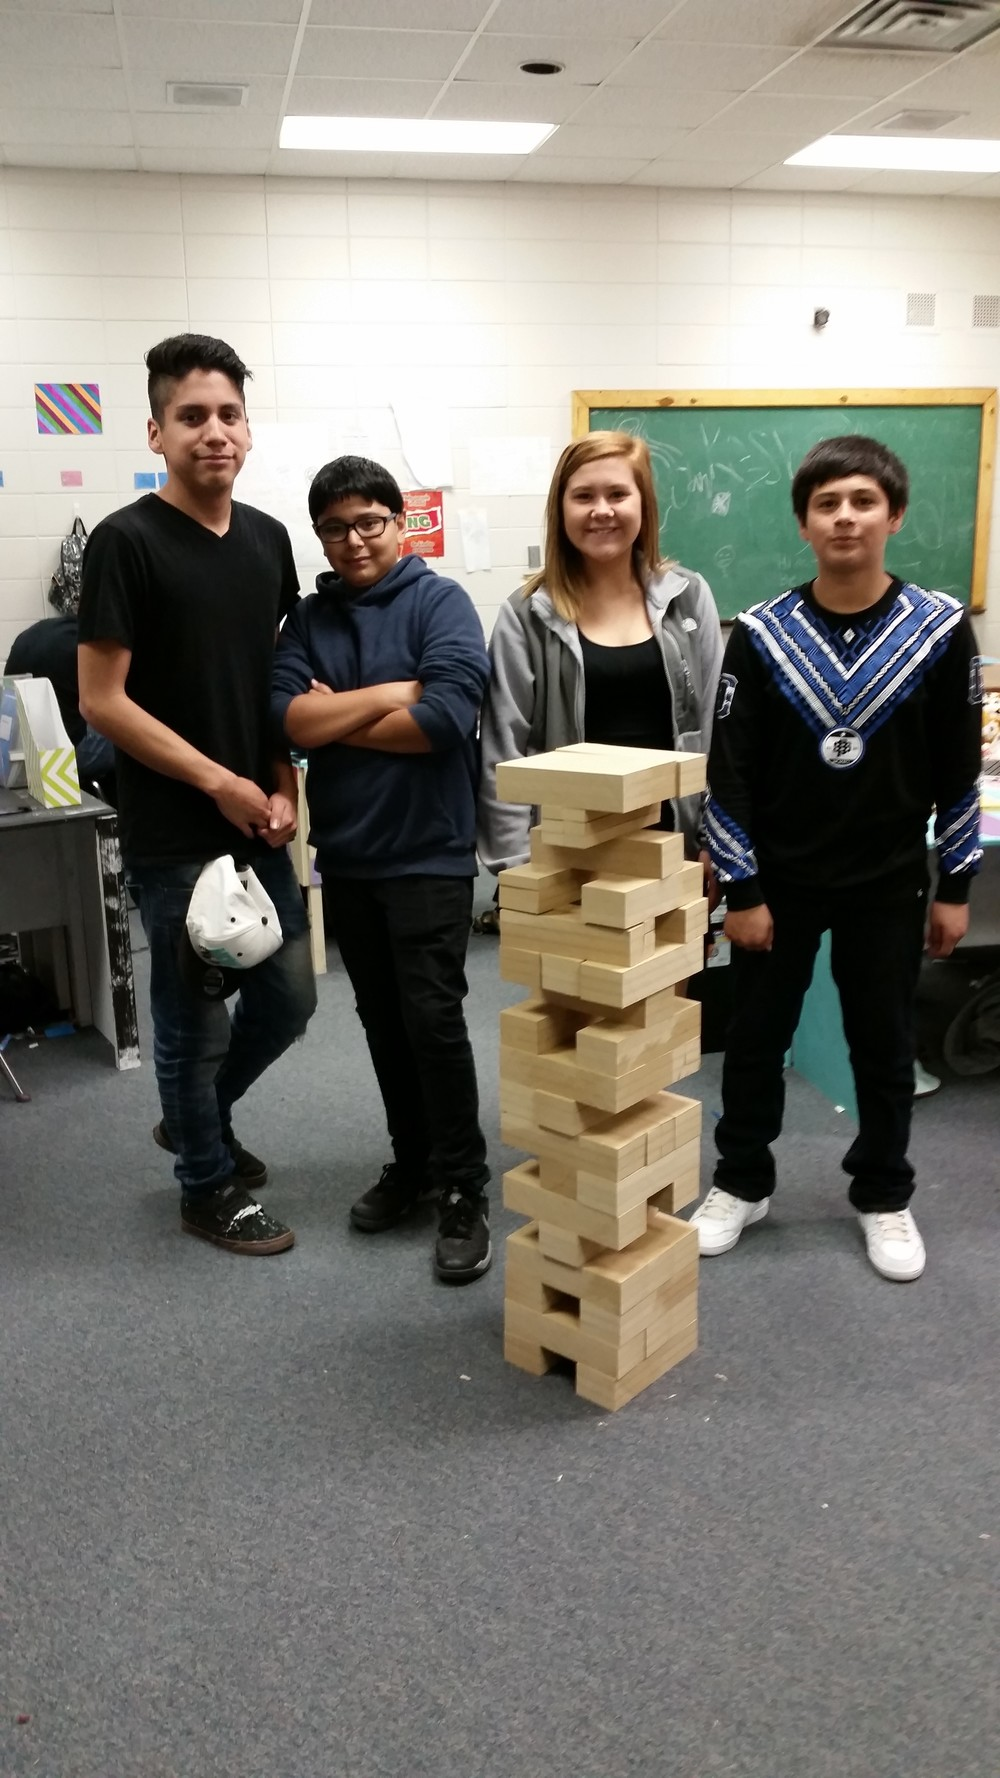 These CHOICE students built a giant Jenga game as one of their projects. With this they learned woodworking skills and applied math.